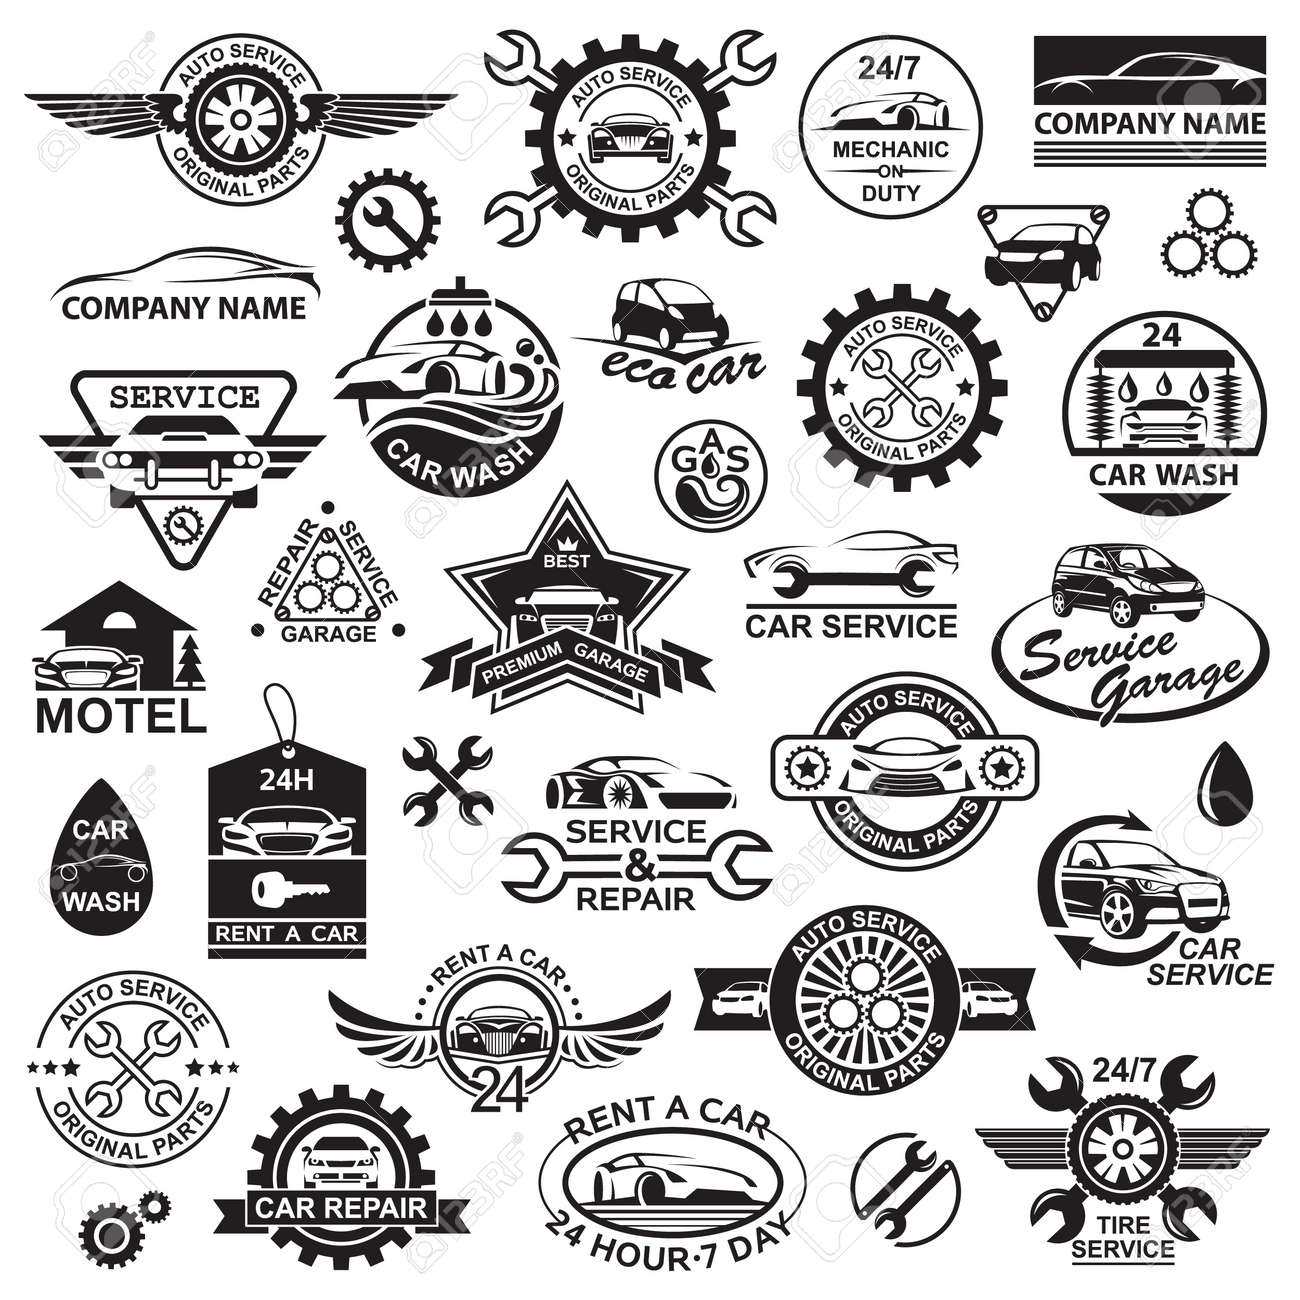 17973 car logo cliparts stock vector and royalty free car logo monochrome illustration of various car icons buycottarizona Images